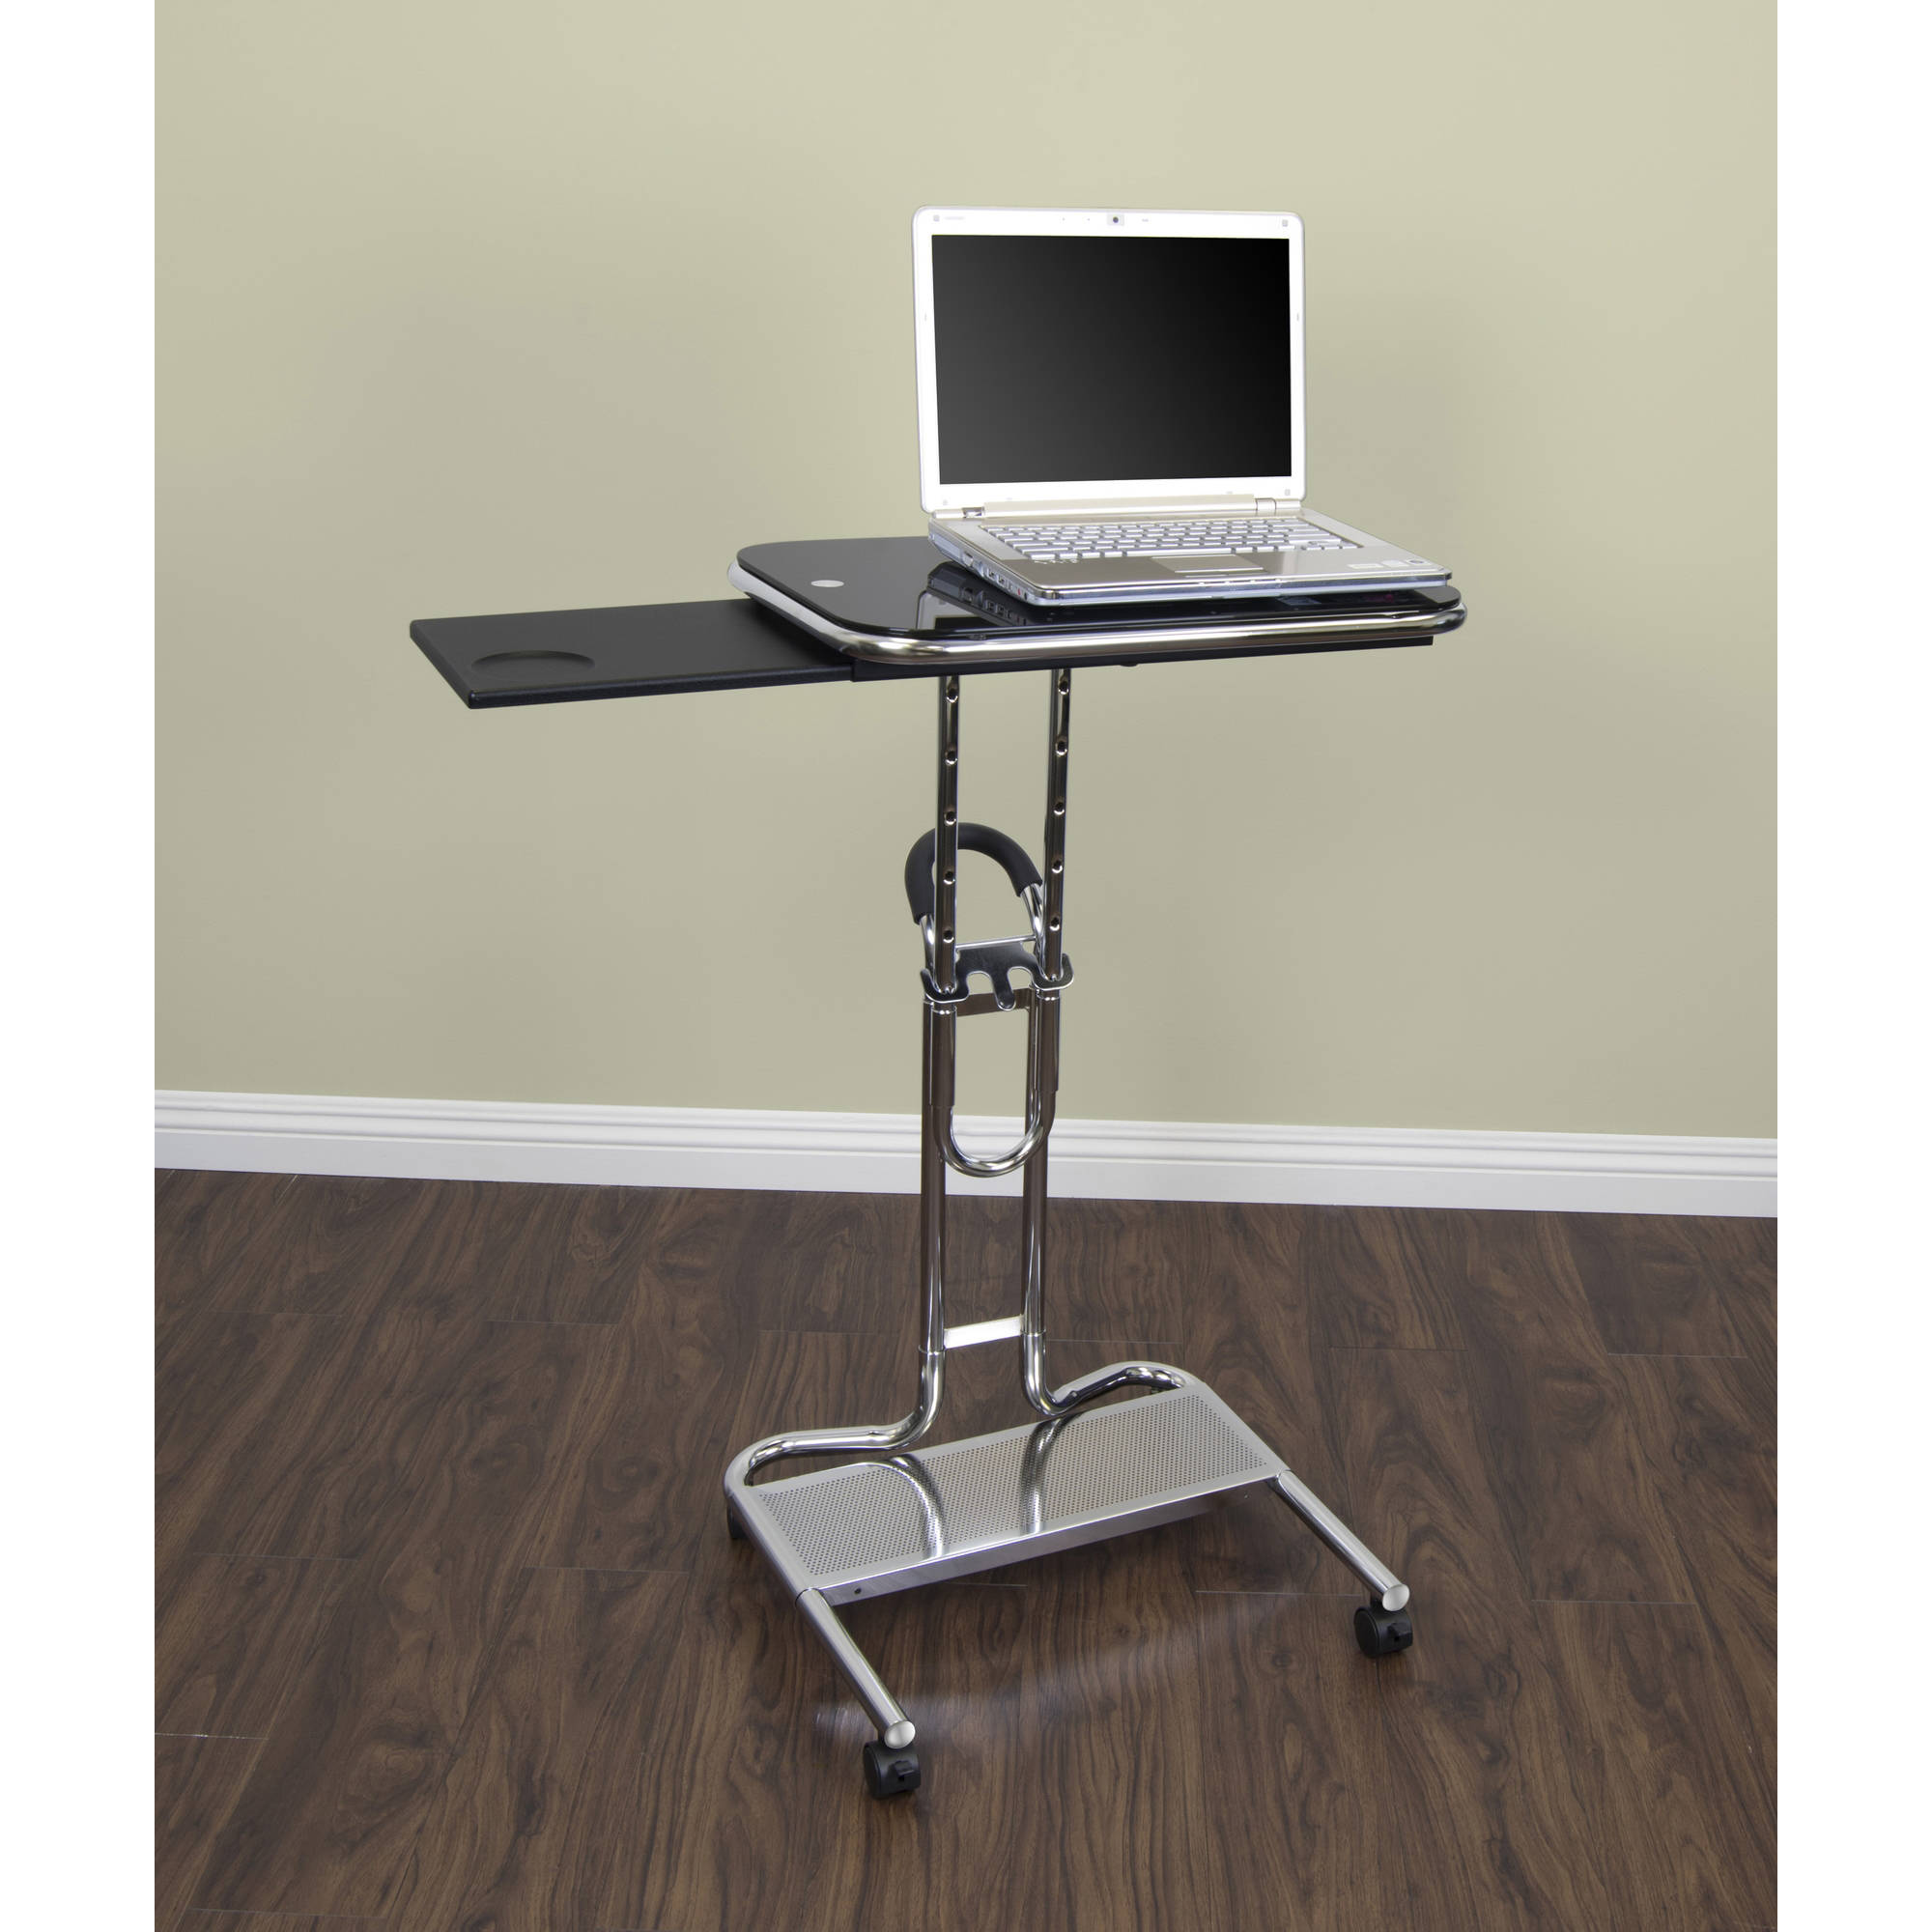 Calico Designs Laptop Cart with Tray in Chrome with Black Glass